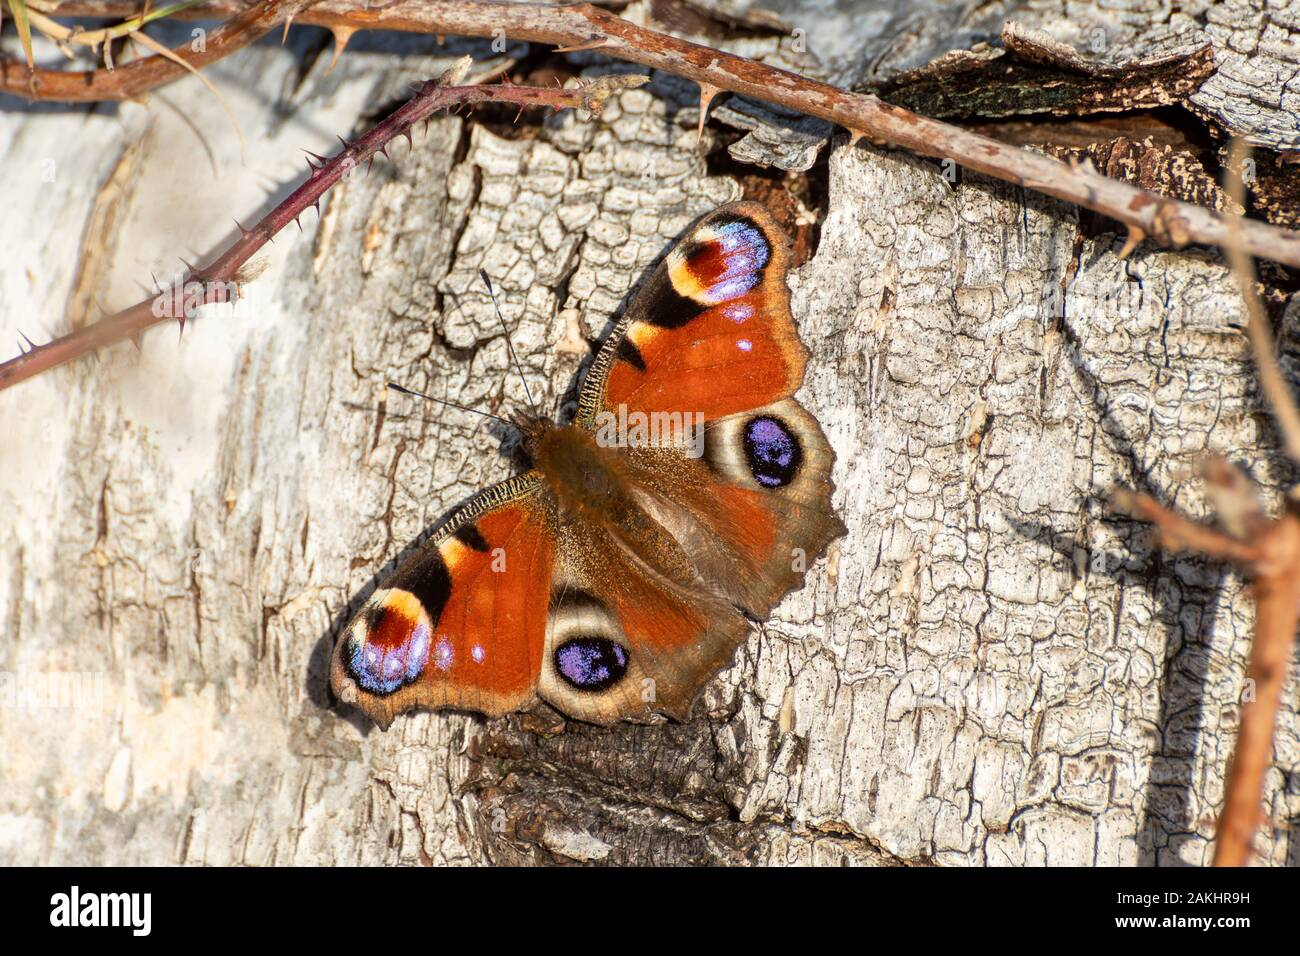 peacock-butterfly-aglais-io-basking-on-a-silver-birch-tree-in-january-a-very-early-emergence-from-hibernation-due-to-unseasonal-warm-temperatures-2AKHR9H.jpg